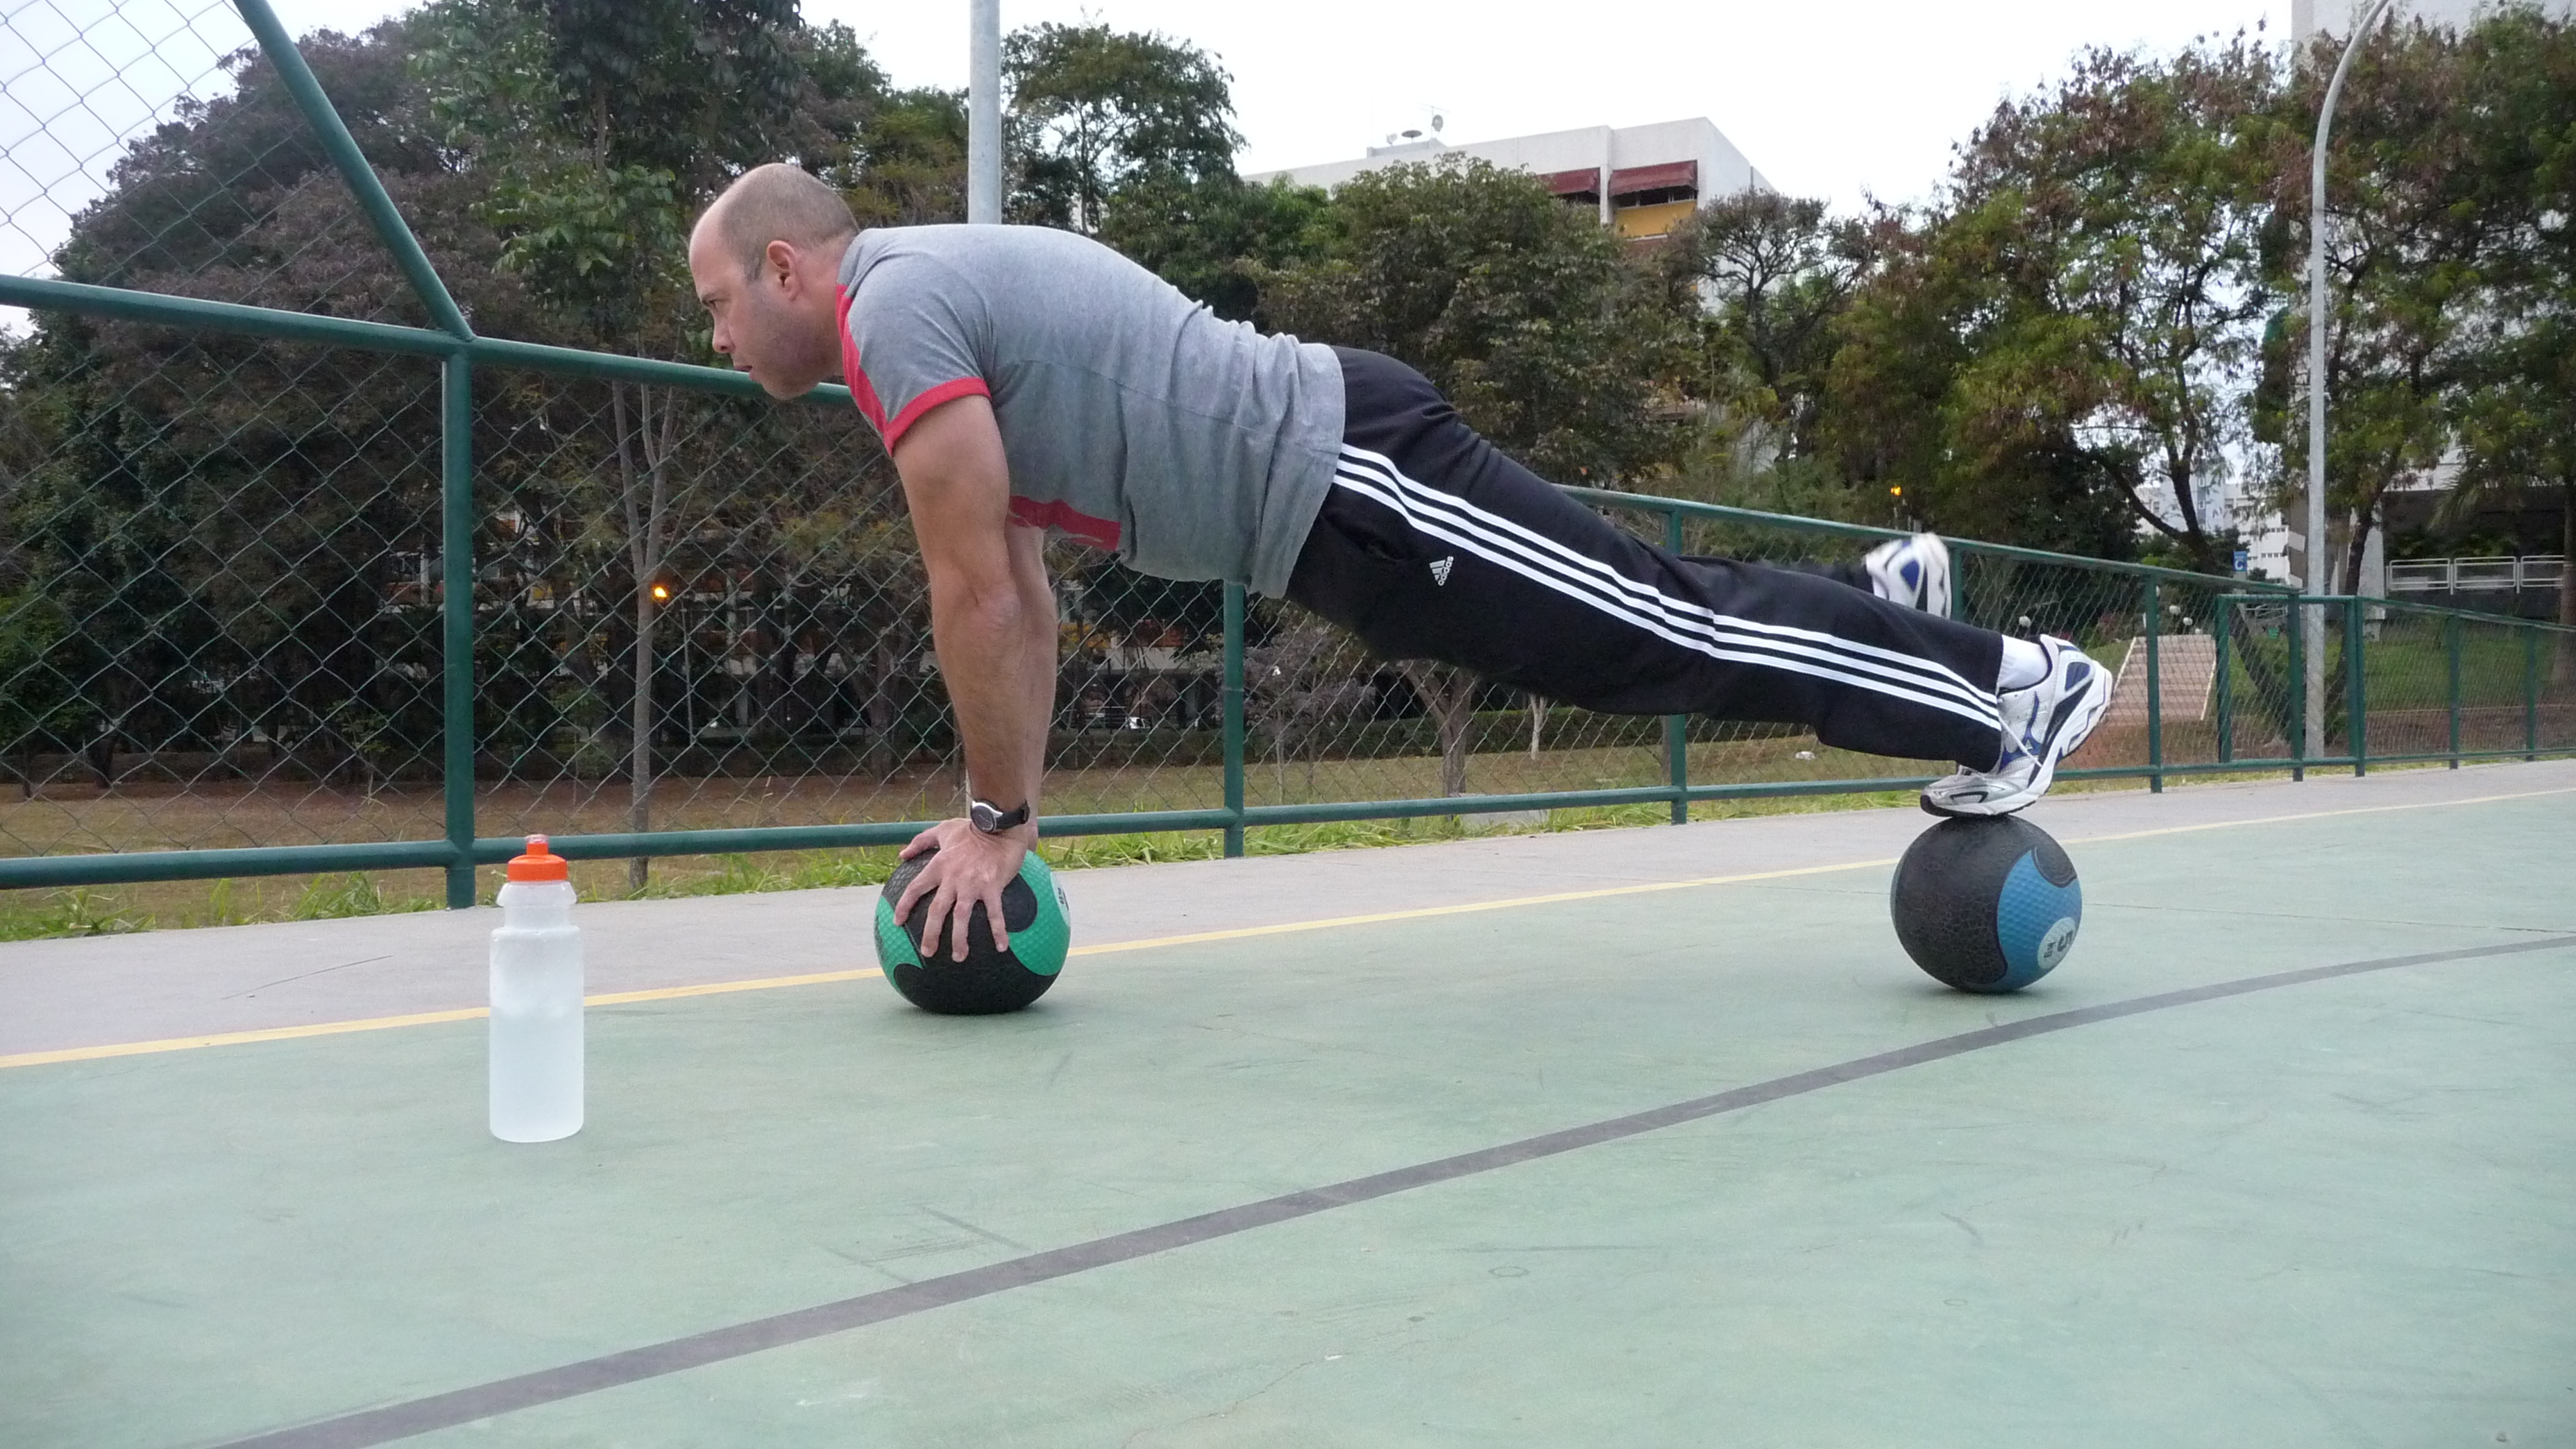 Tabata Workouts 7 Extreme Fat Shredding Circuits Body Weight And Timers For Hiit Circuit Training Are Included Bodyweight